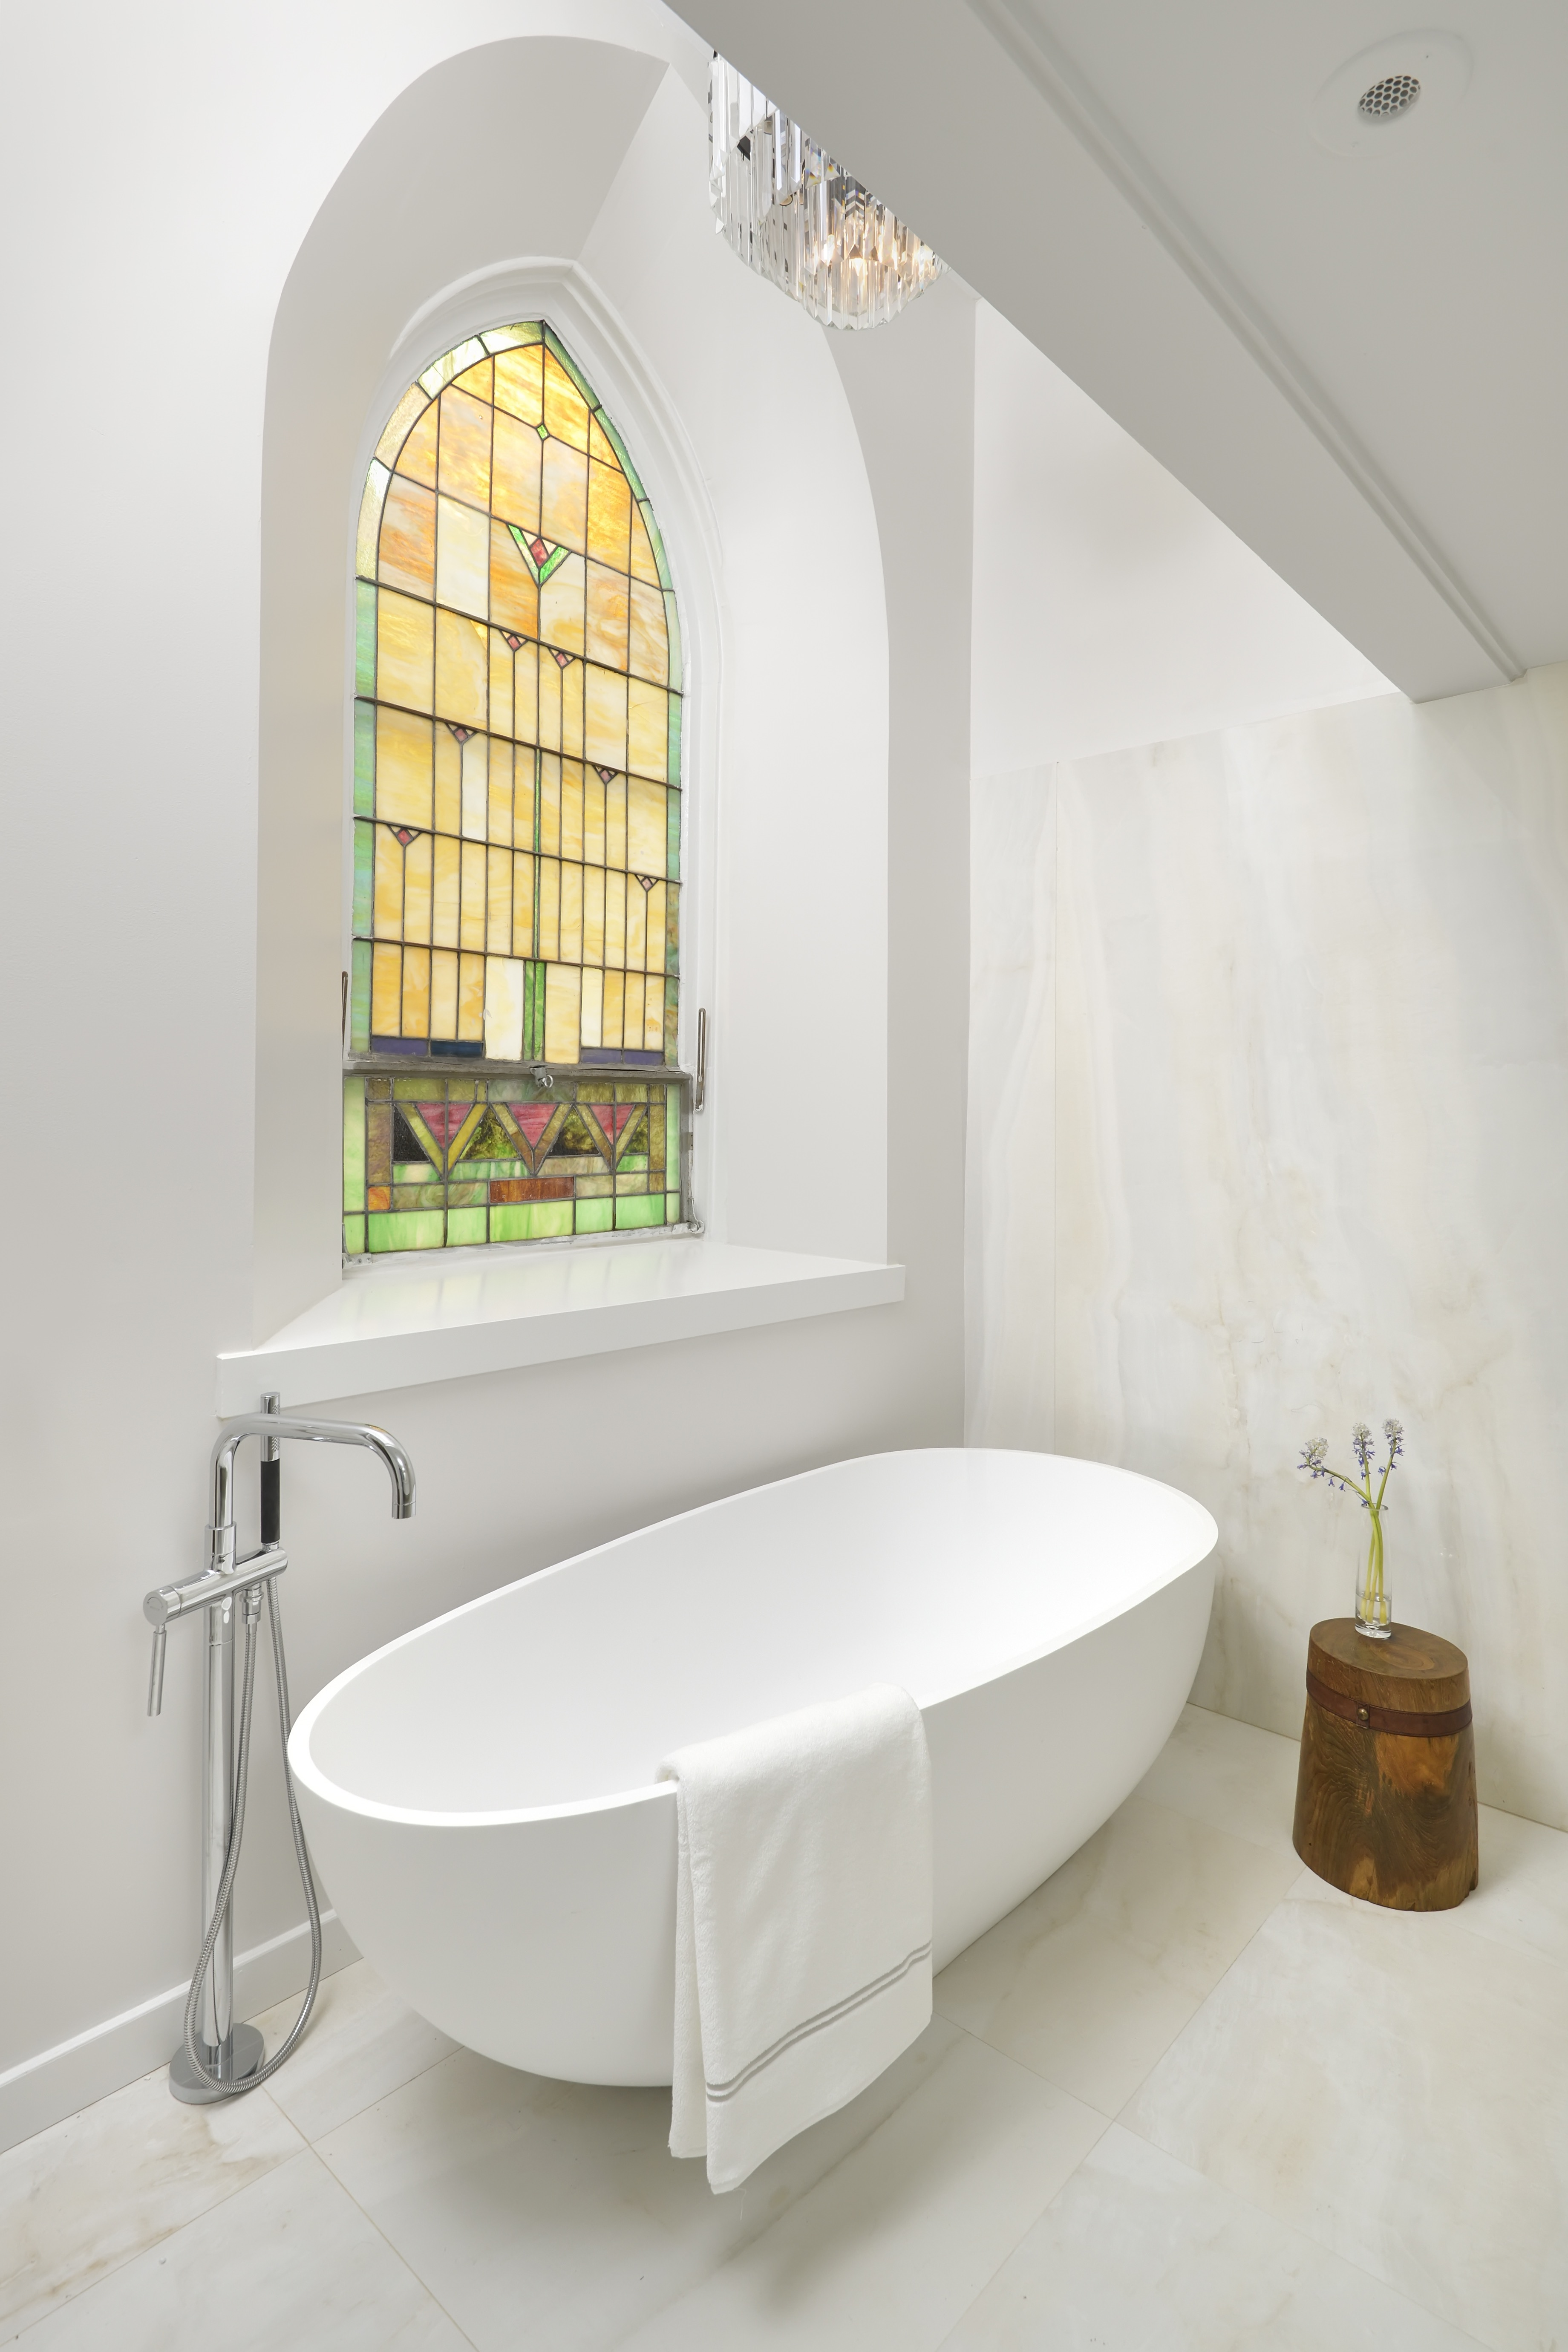 Small Attic Bathroom Remodel In Minimalist Style (Image 7 of 17)